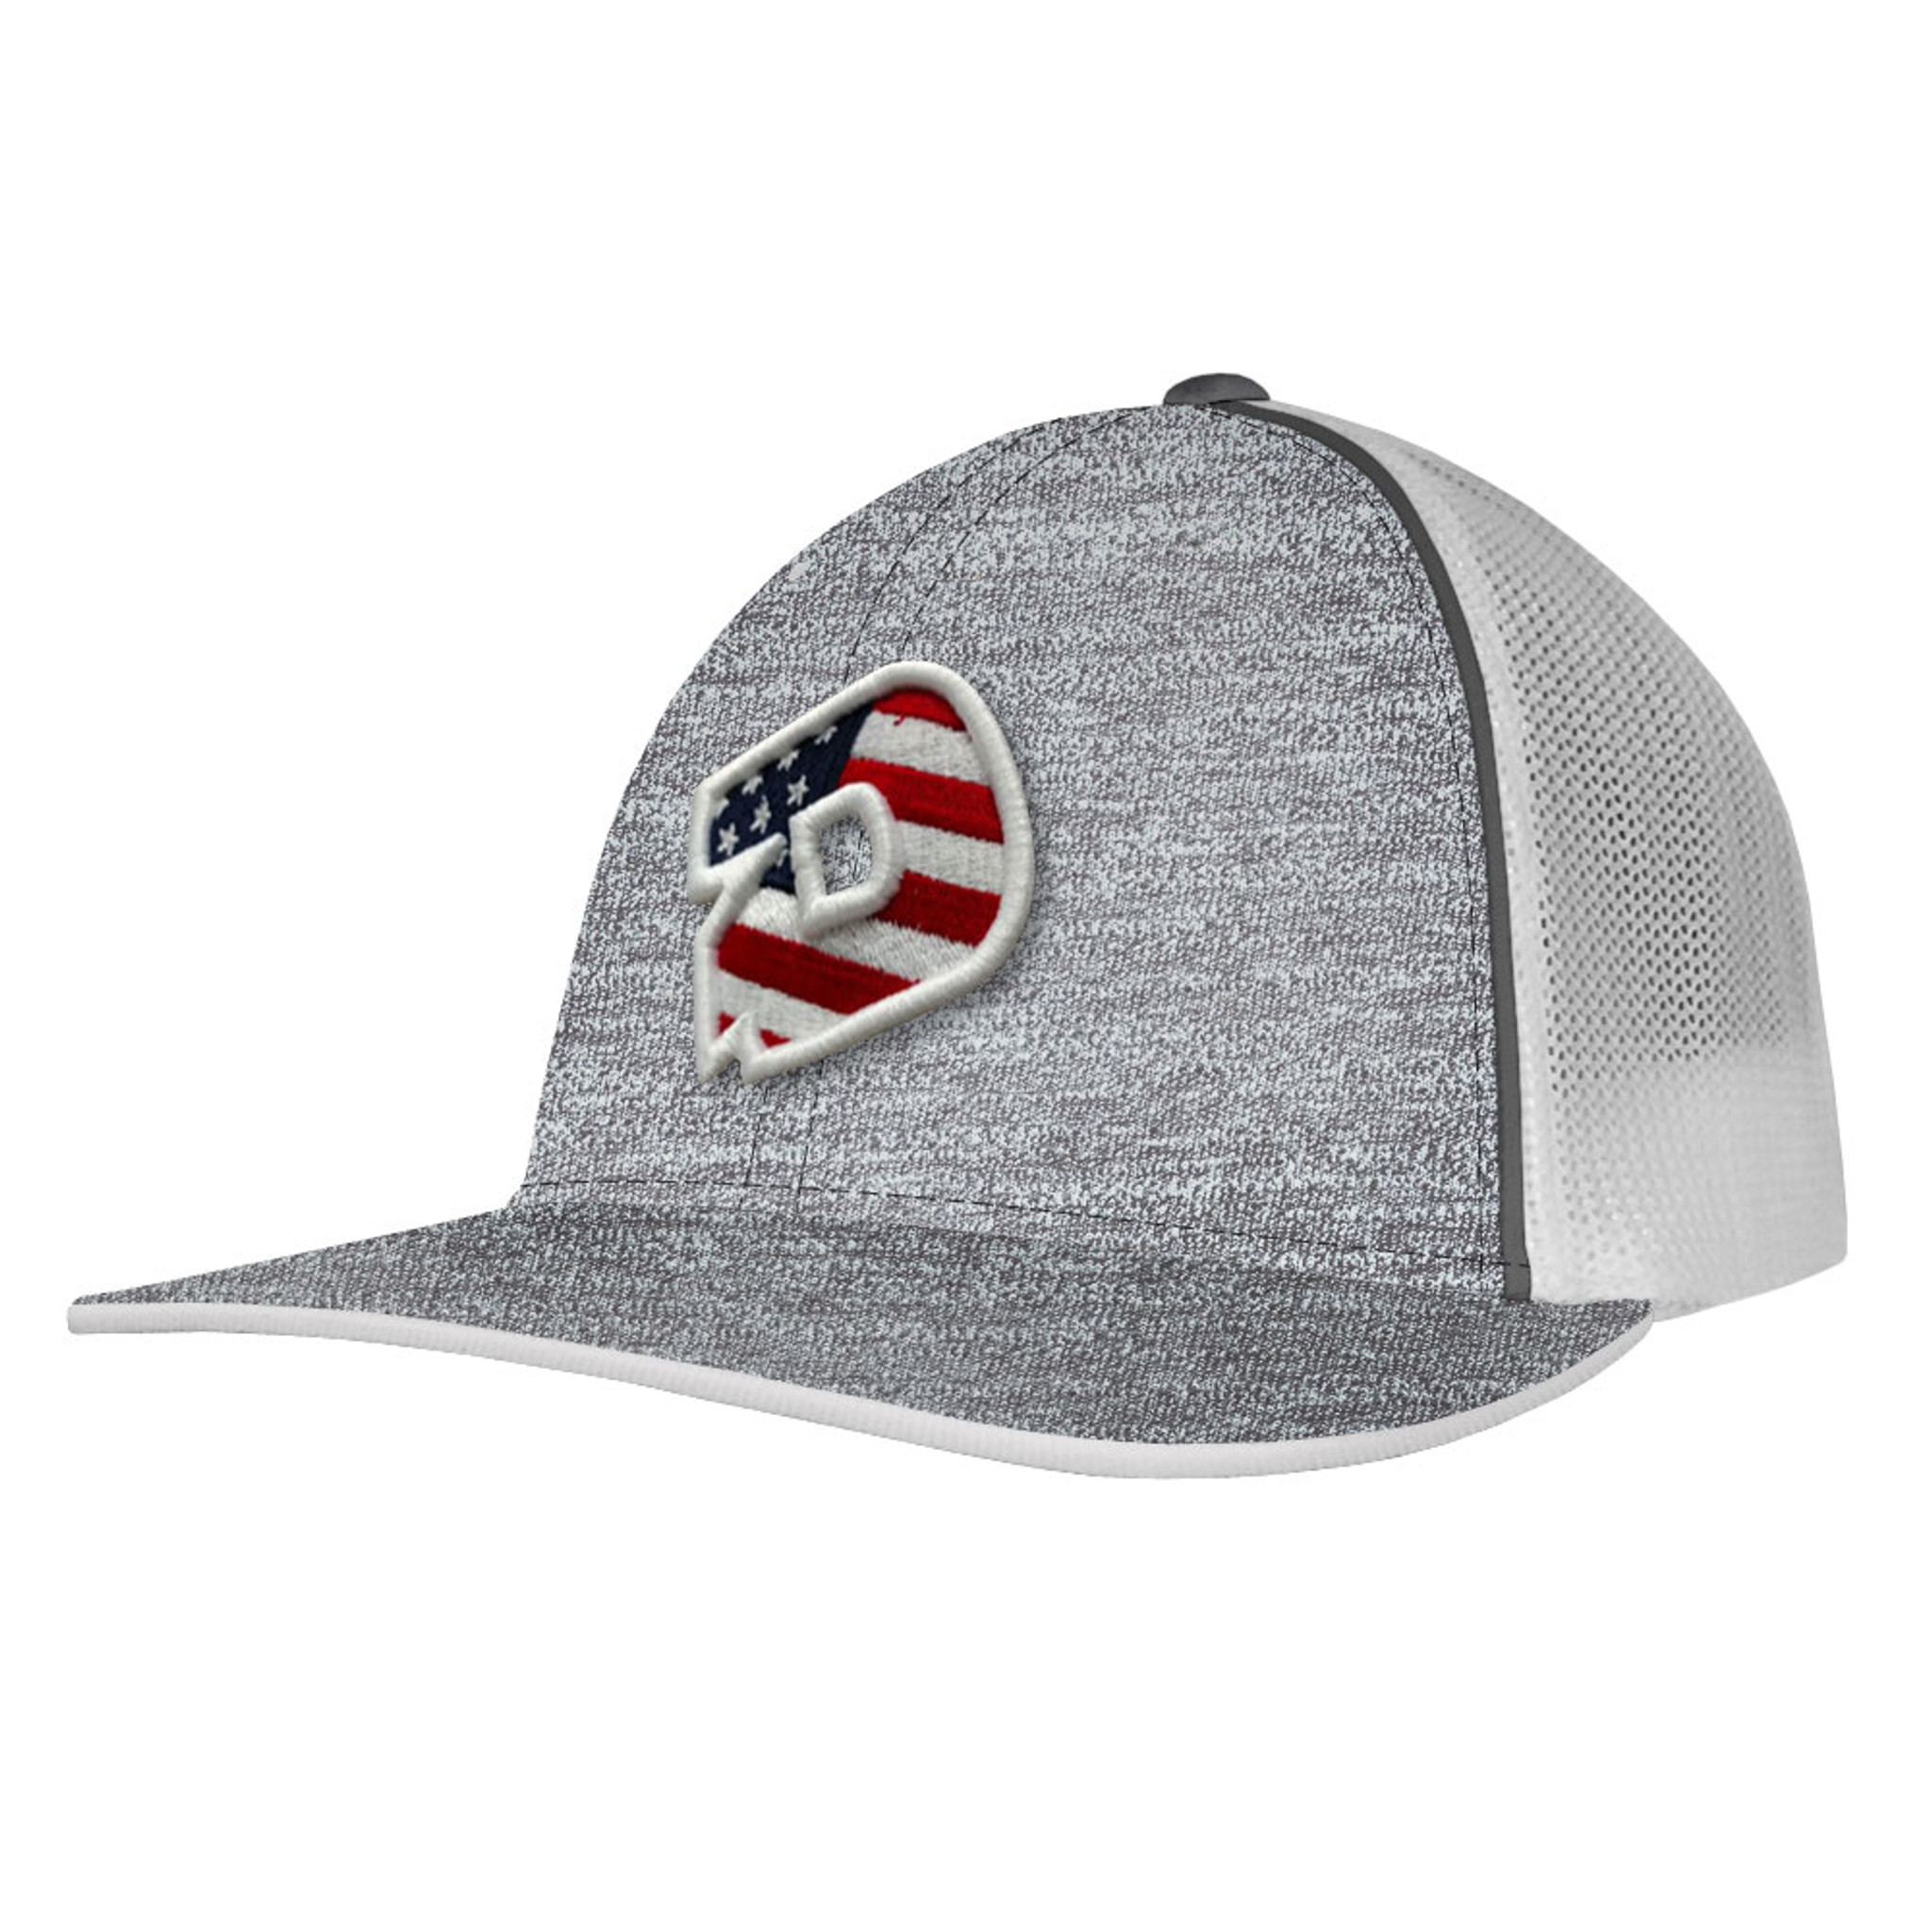 3121dee22c645a ... DeMarini D Logo Heather USA Baseball/Softball Trucker Hat ·  https://d3d71ba2asa5oz.cloudfront.net/40000432/images/demarini-